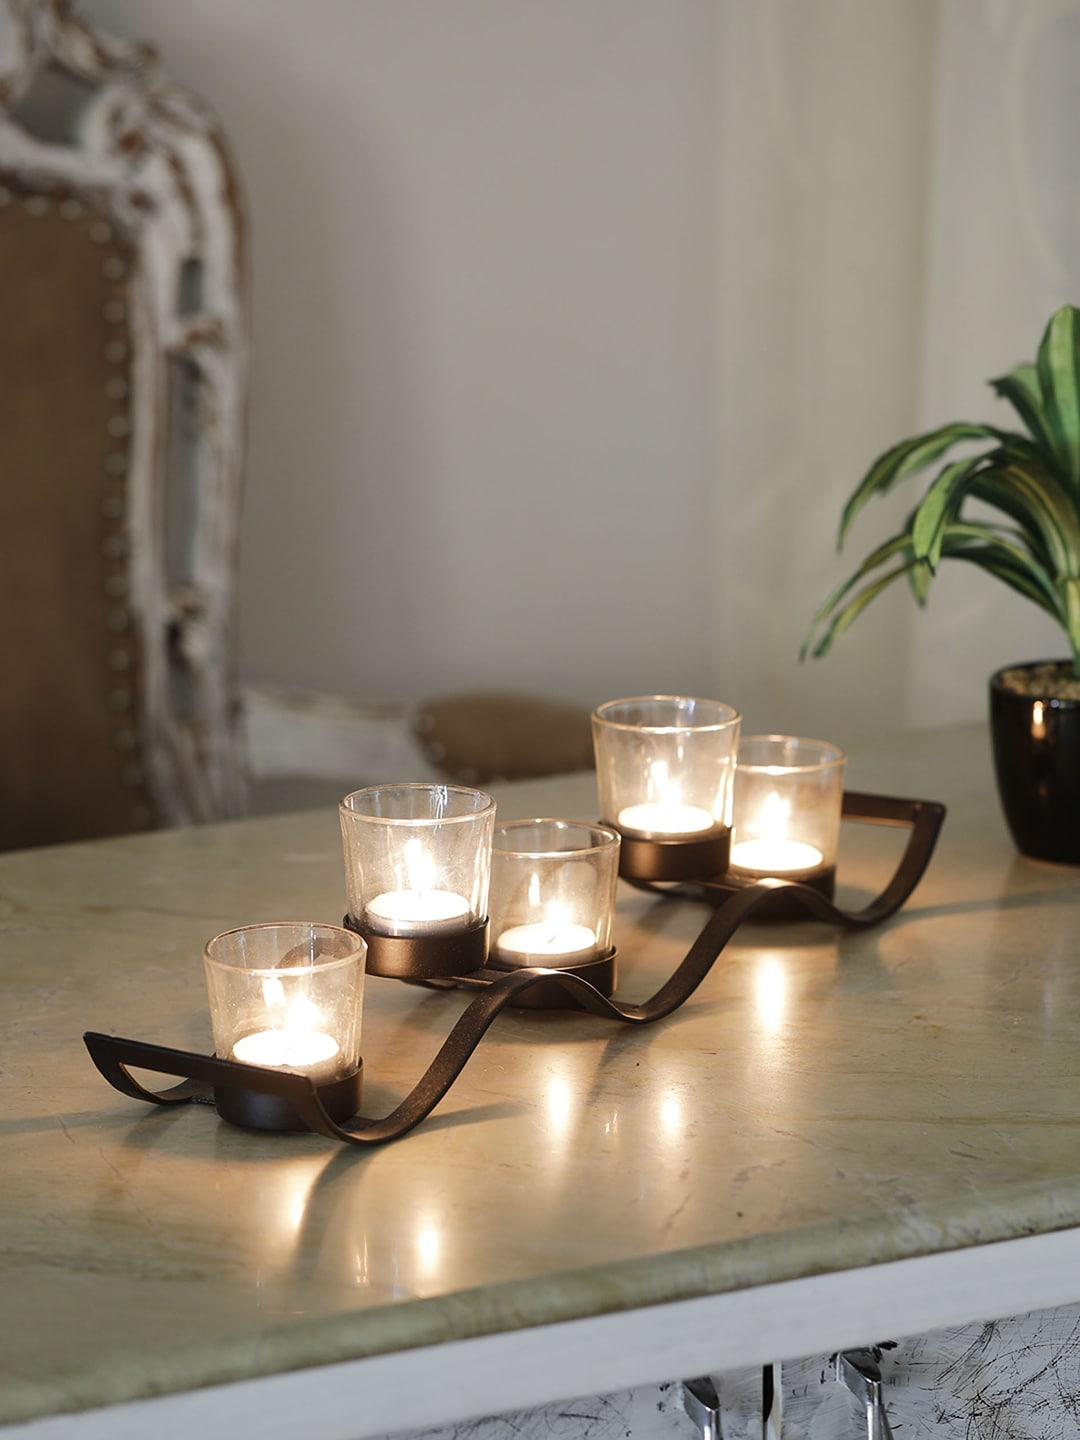 a52bd72c52924f Men Flip Flops Ties Candle Holders Holders S - Buy Men Flip Flops Ties Candle  Holders Holders S online in India